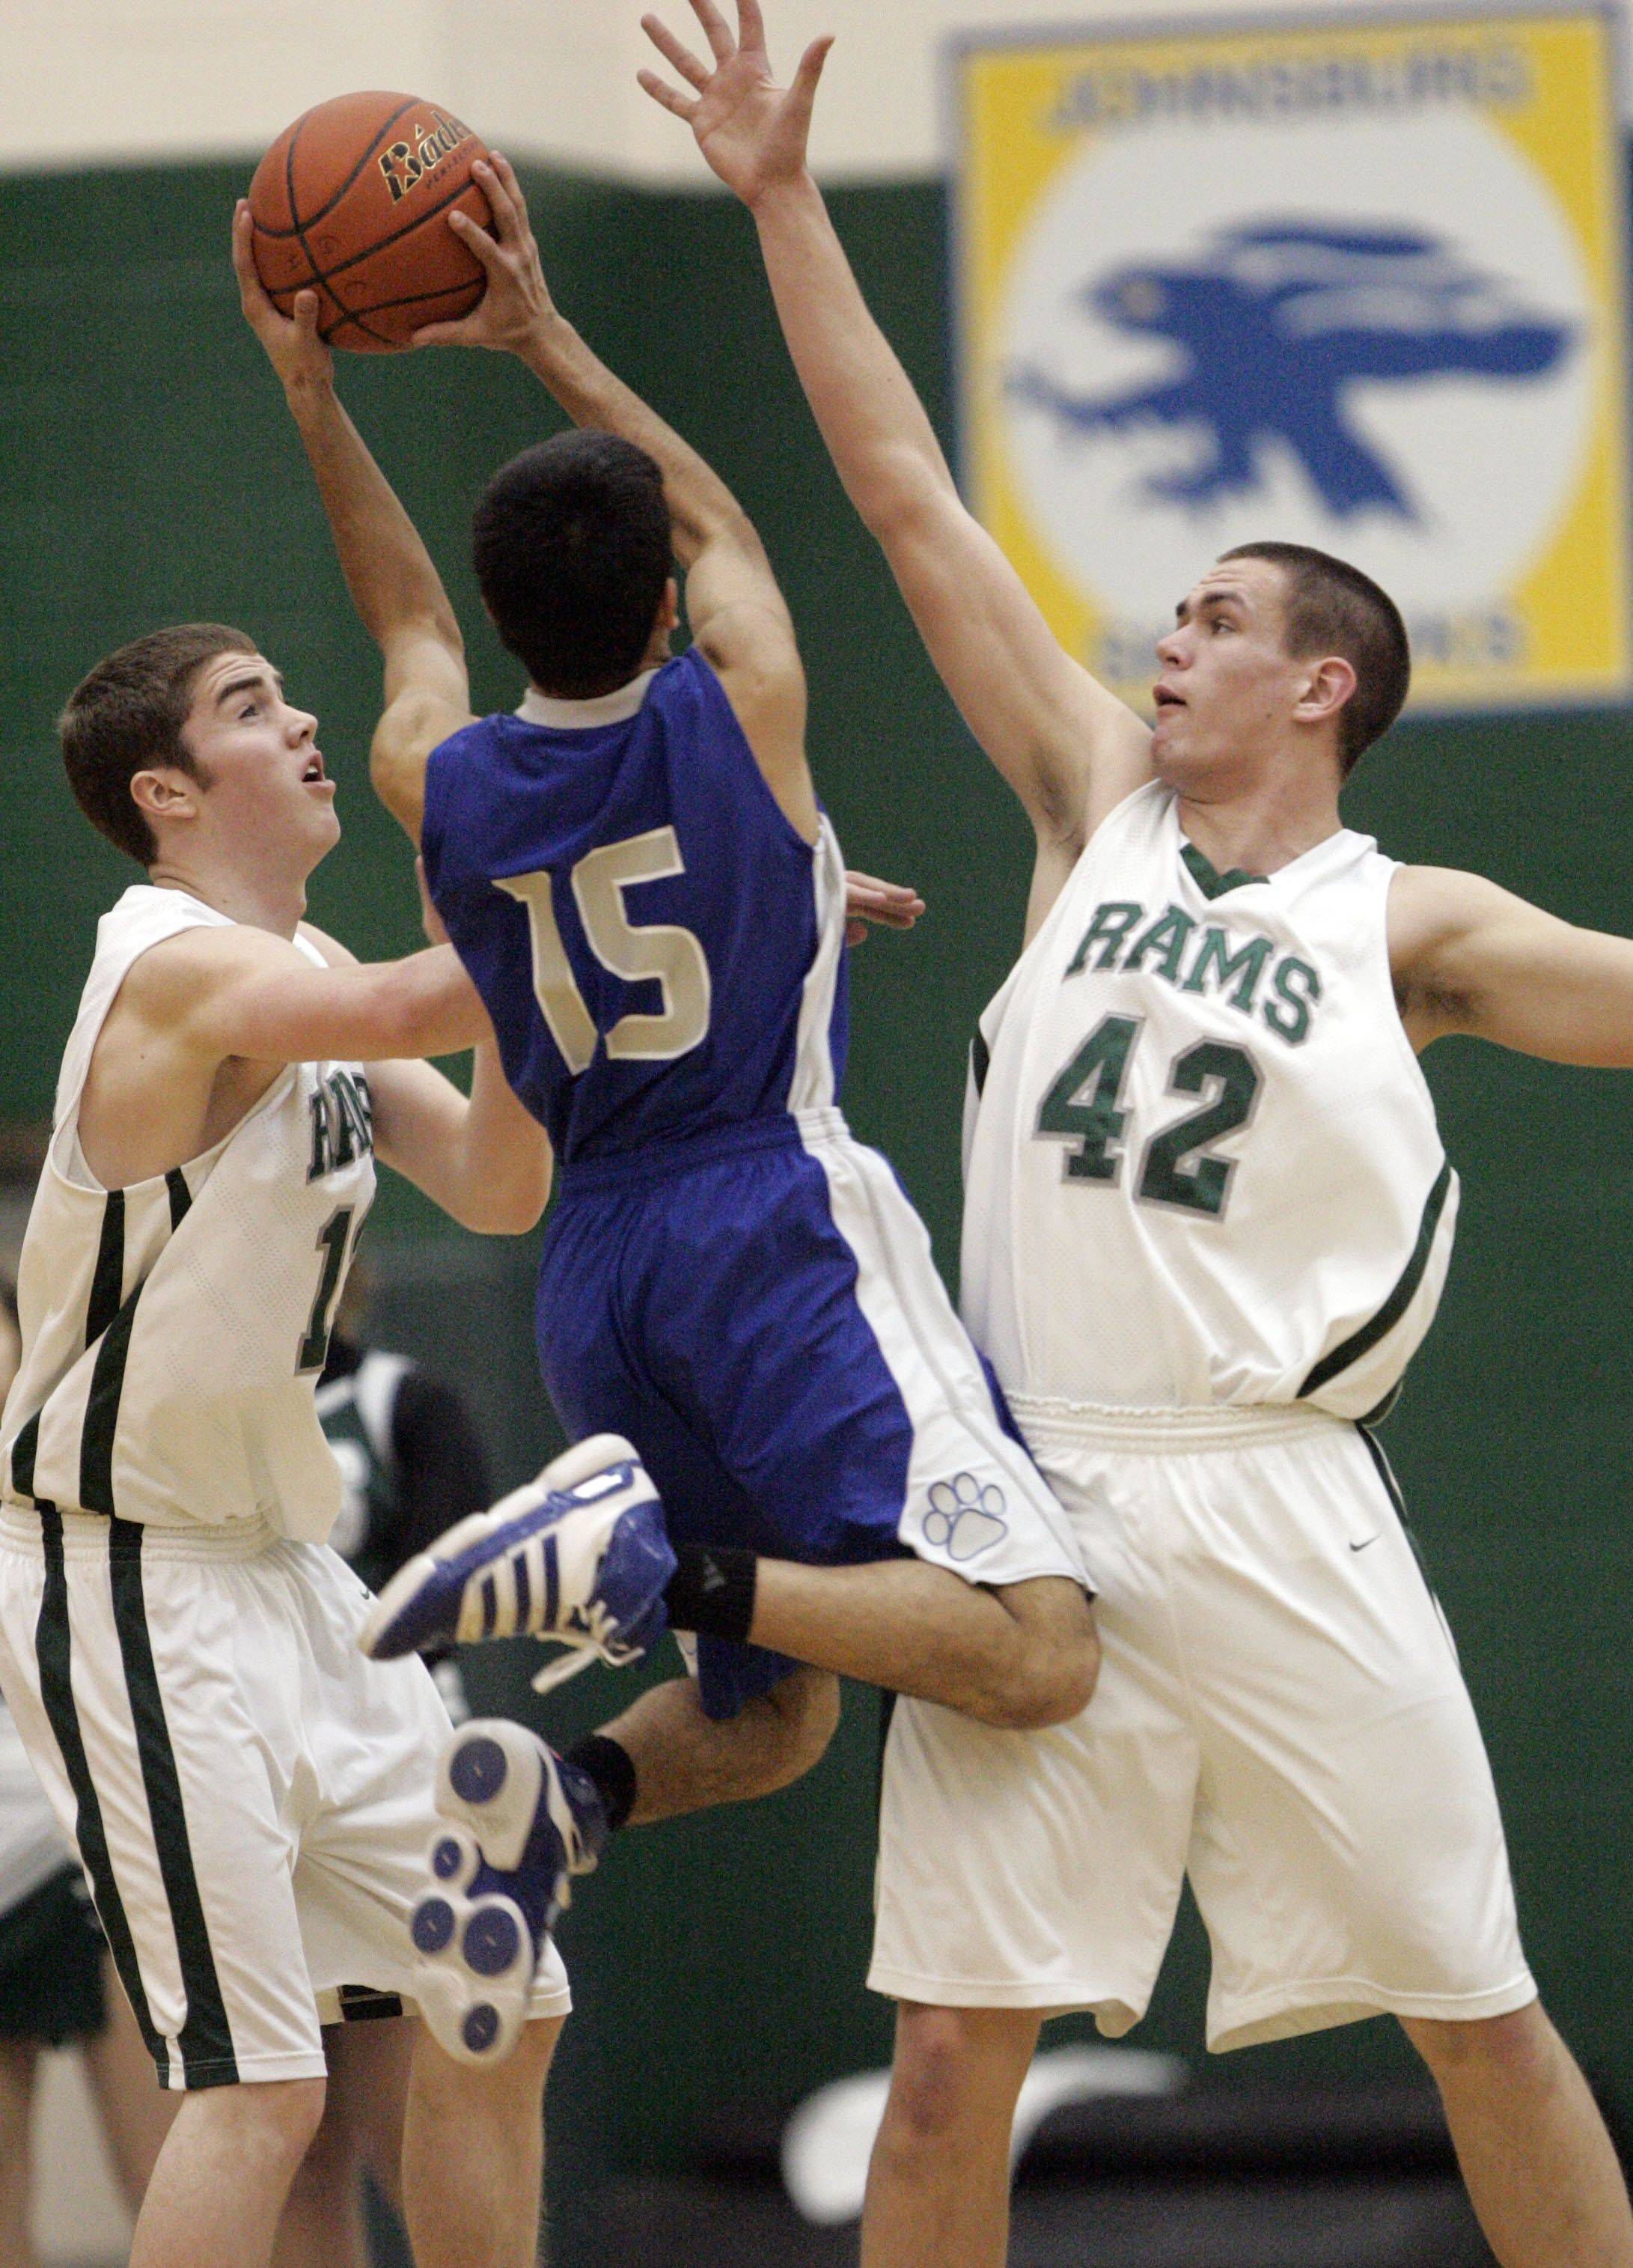 Vernon Hills' Darren Hoveydai drives on Grayslake Central's Tim Abbott, left, and CJ Stempeck .